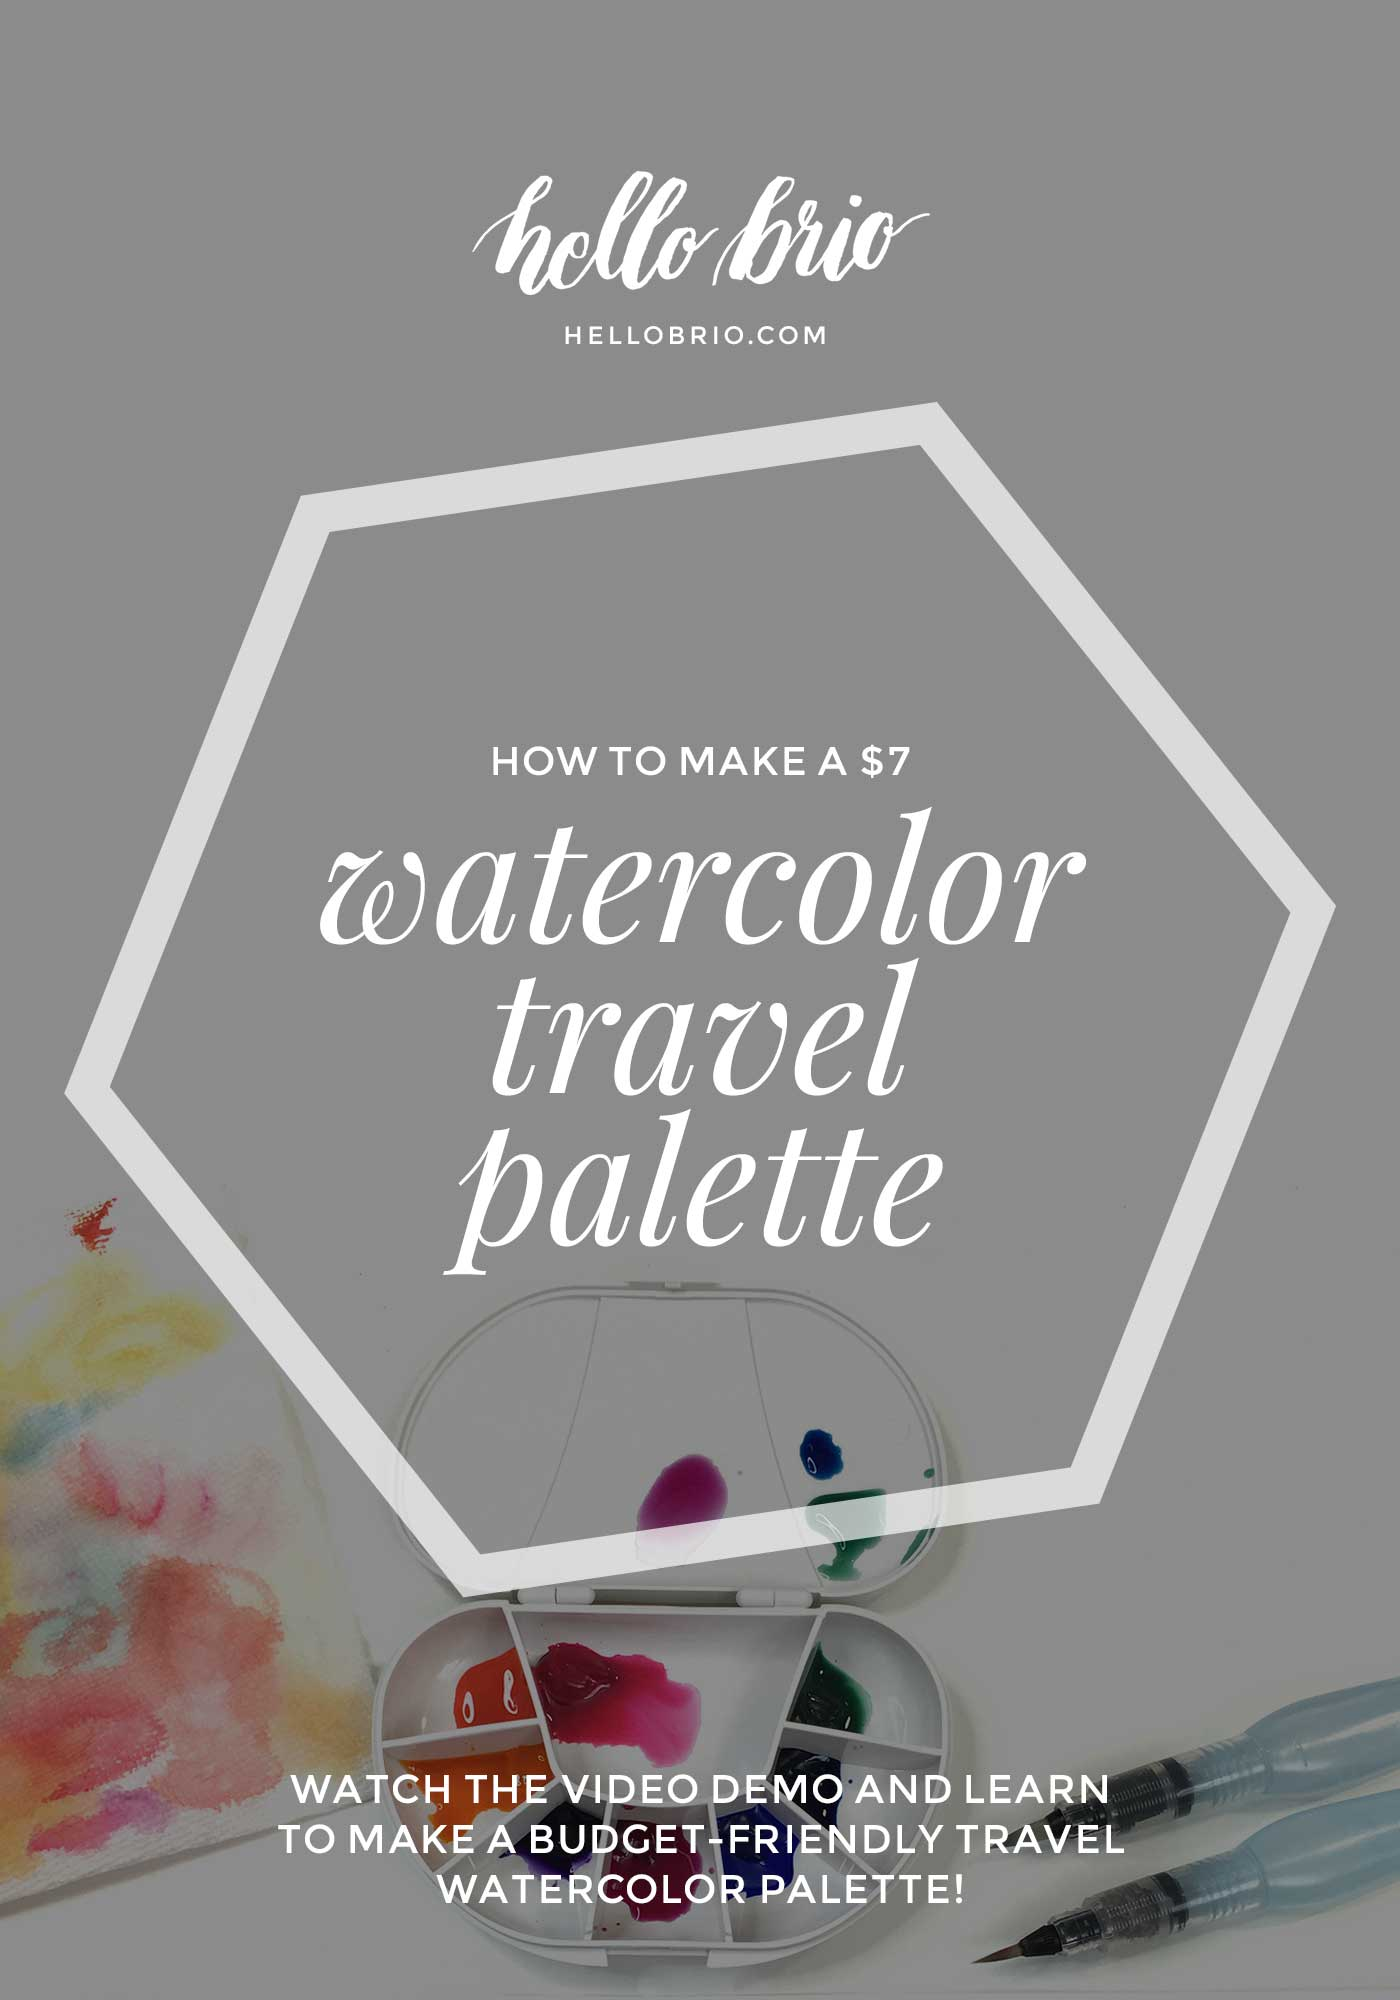 How to make a $7 watercolor travel palette